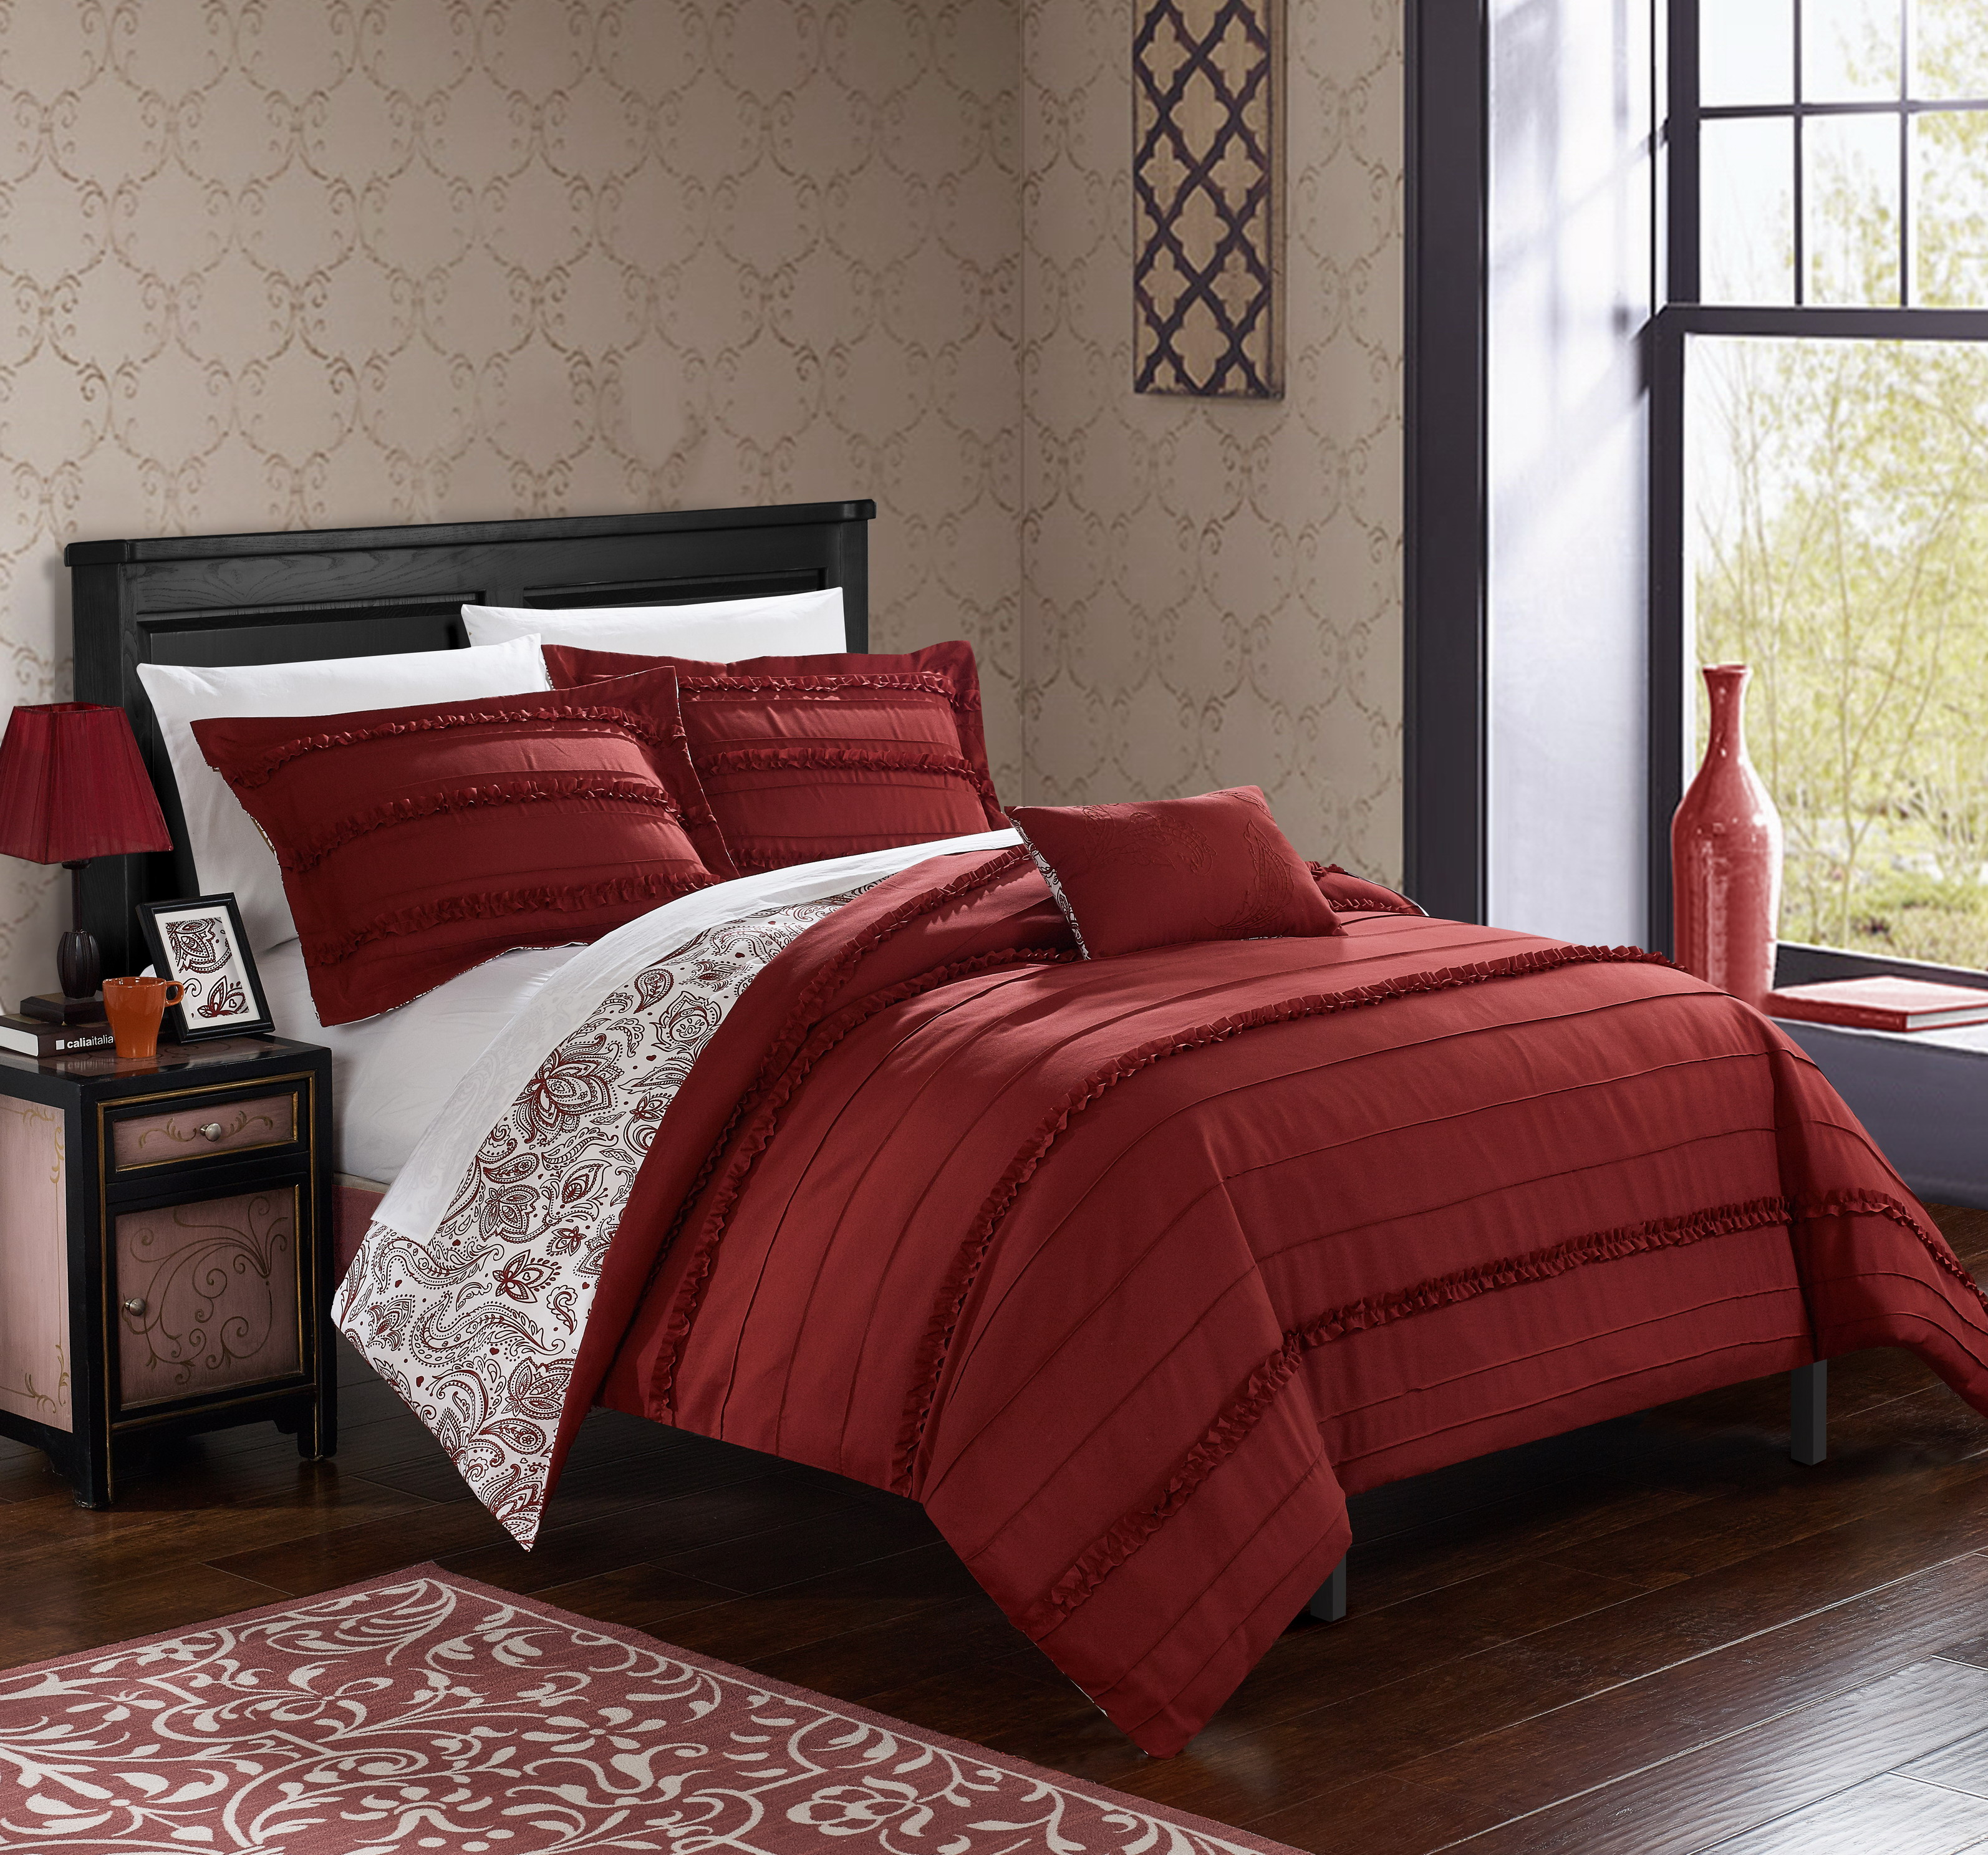 Chic Home 4 Piece Atticus Pleated and Ruffled REVERSIBLE Paisely Floral Print King Duvet Cover Set Brick Shams and Decorative Pillows included